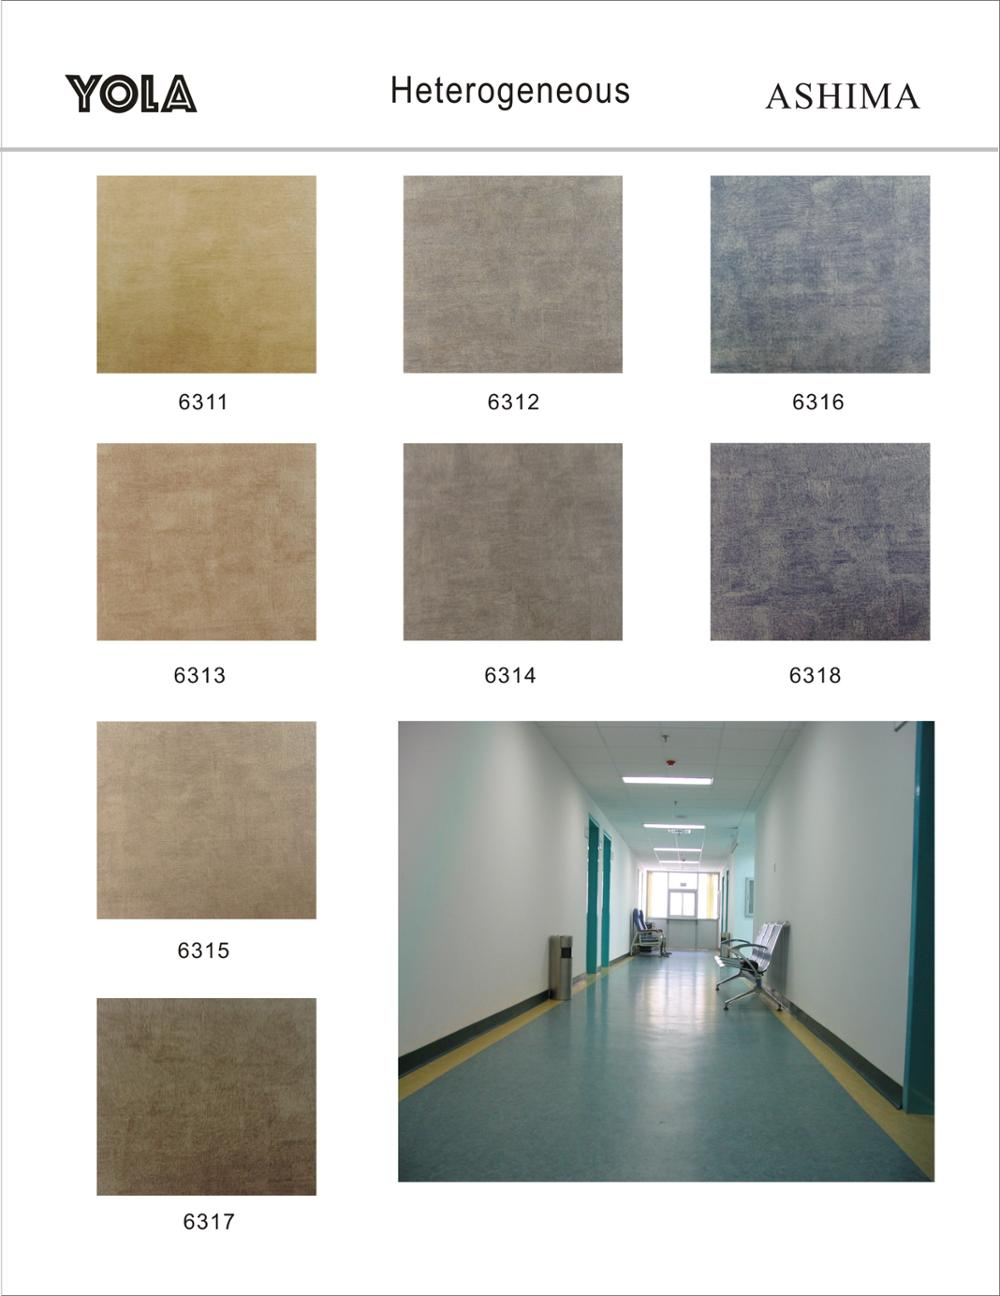 Comfortable Poly Vinyl Chloride Heterogeneous Flooring Roll Wholesale Buy